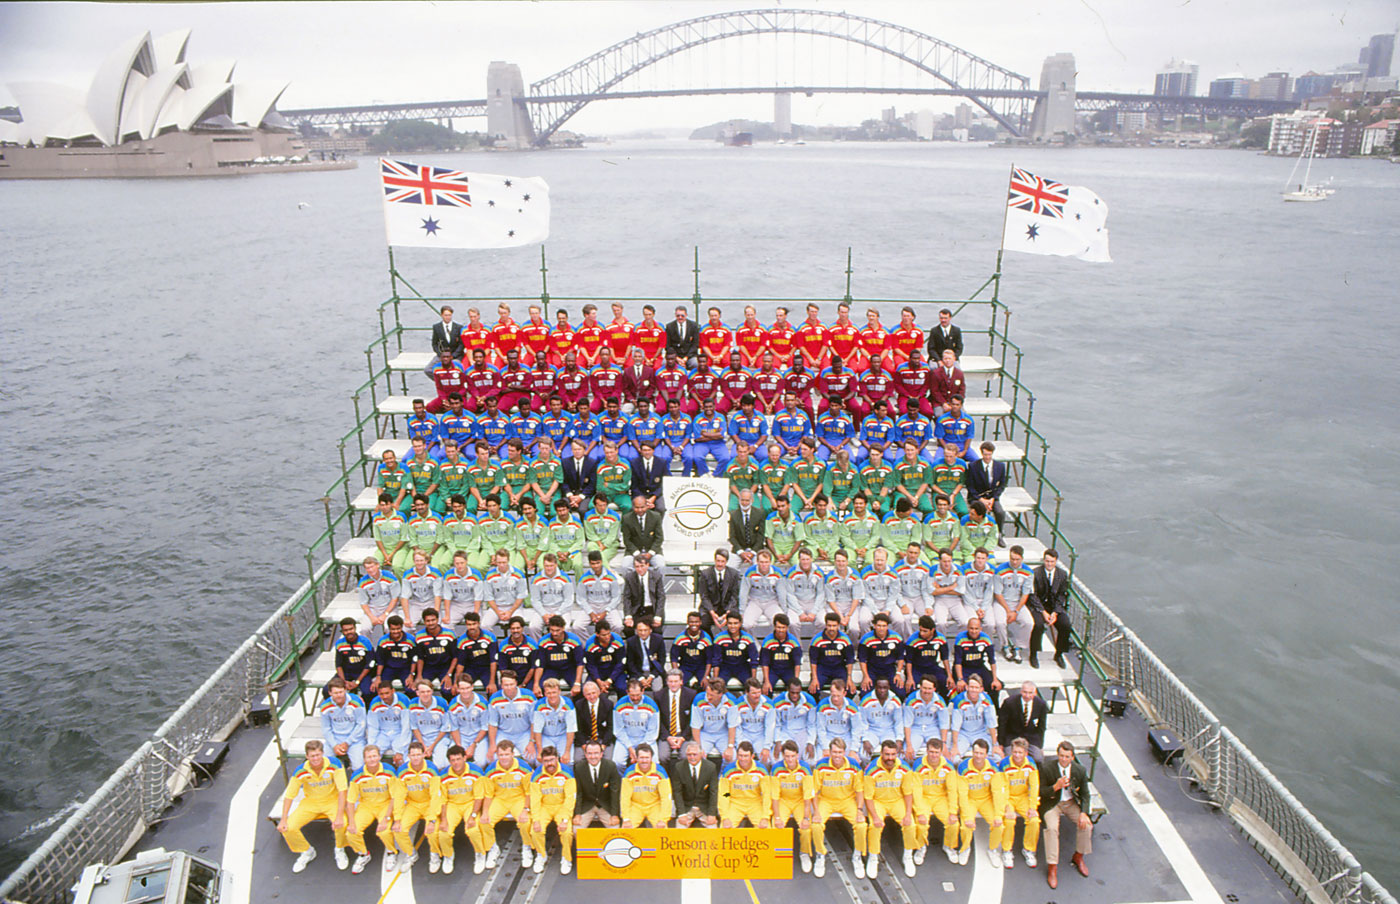 The nine teams at the 1992 World Cup